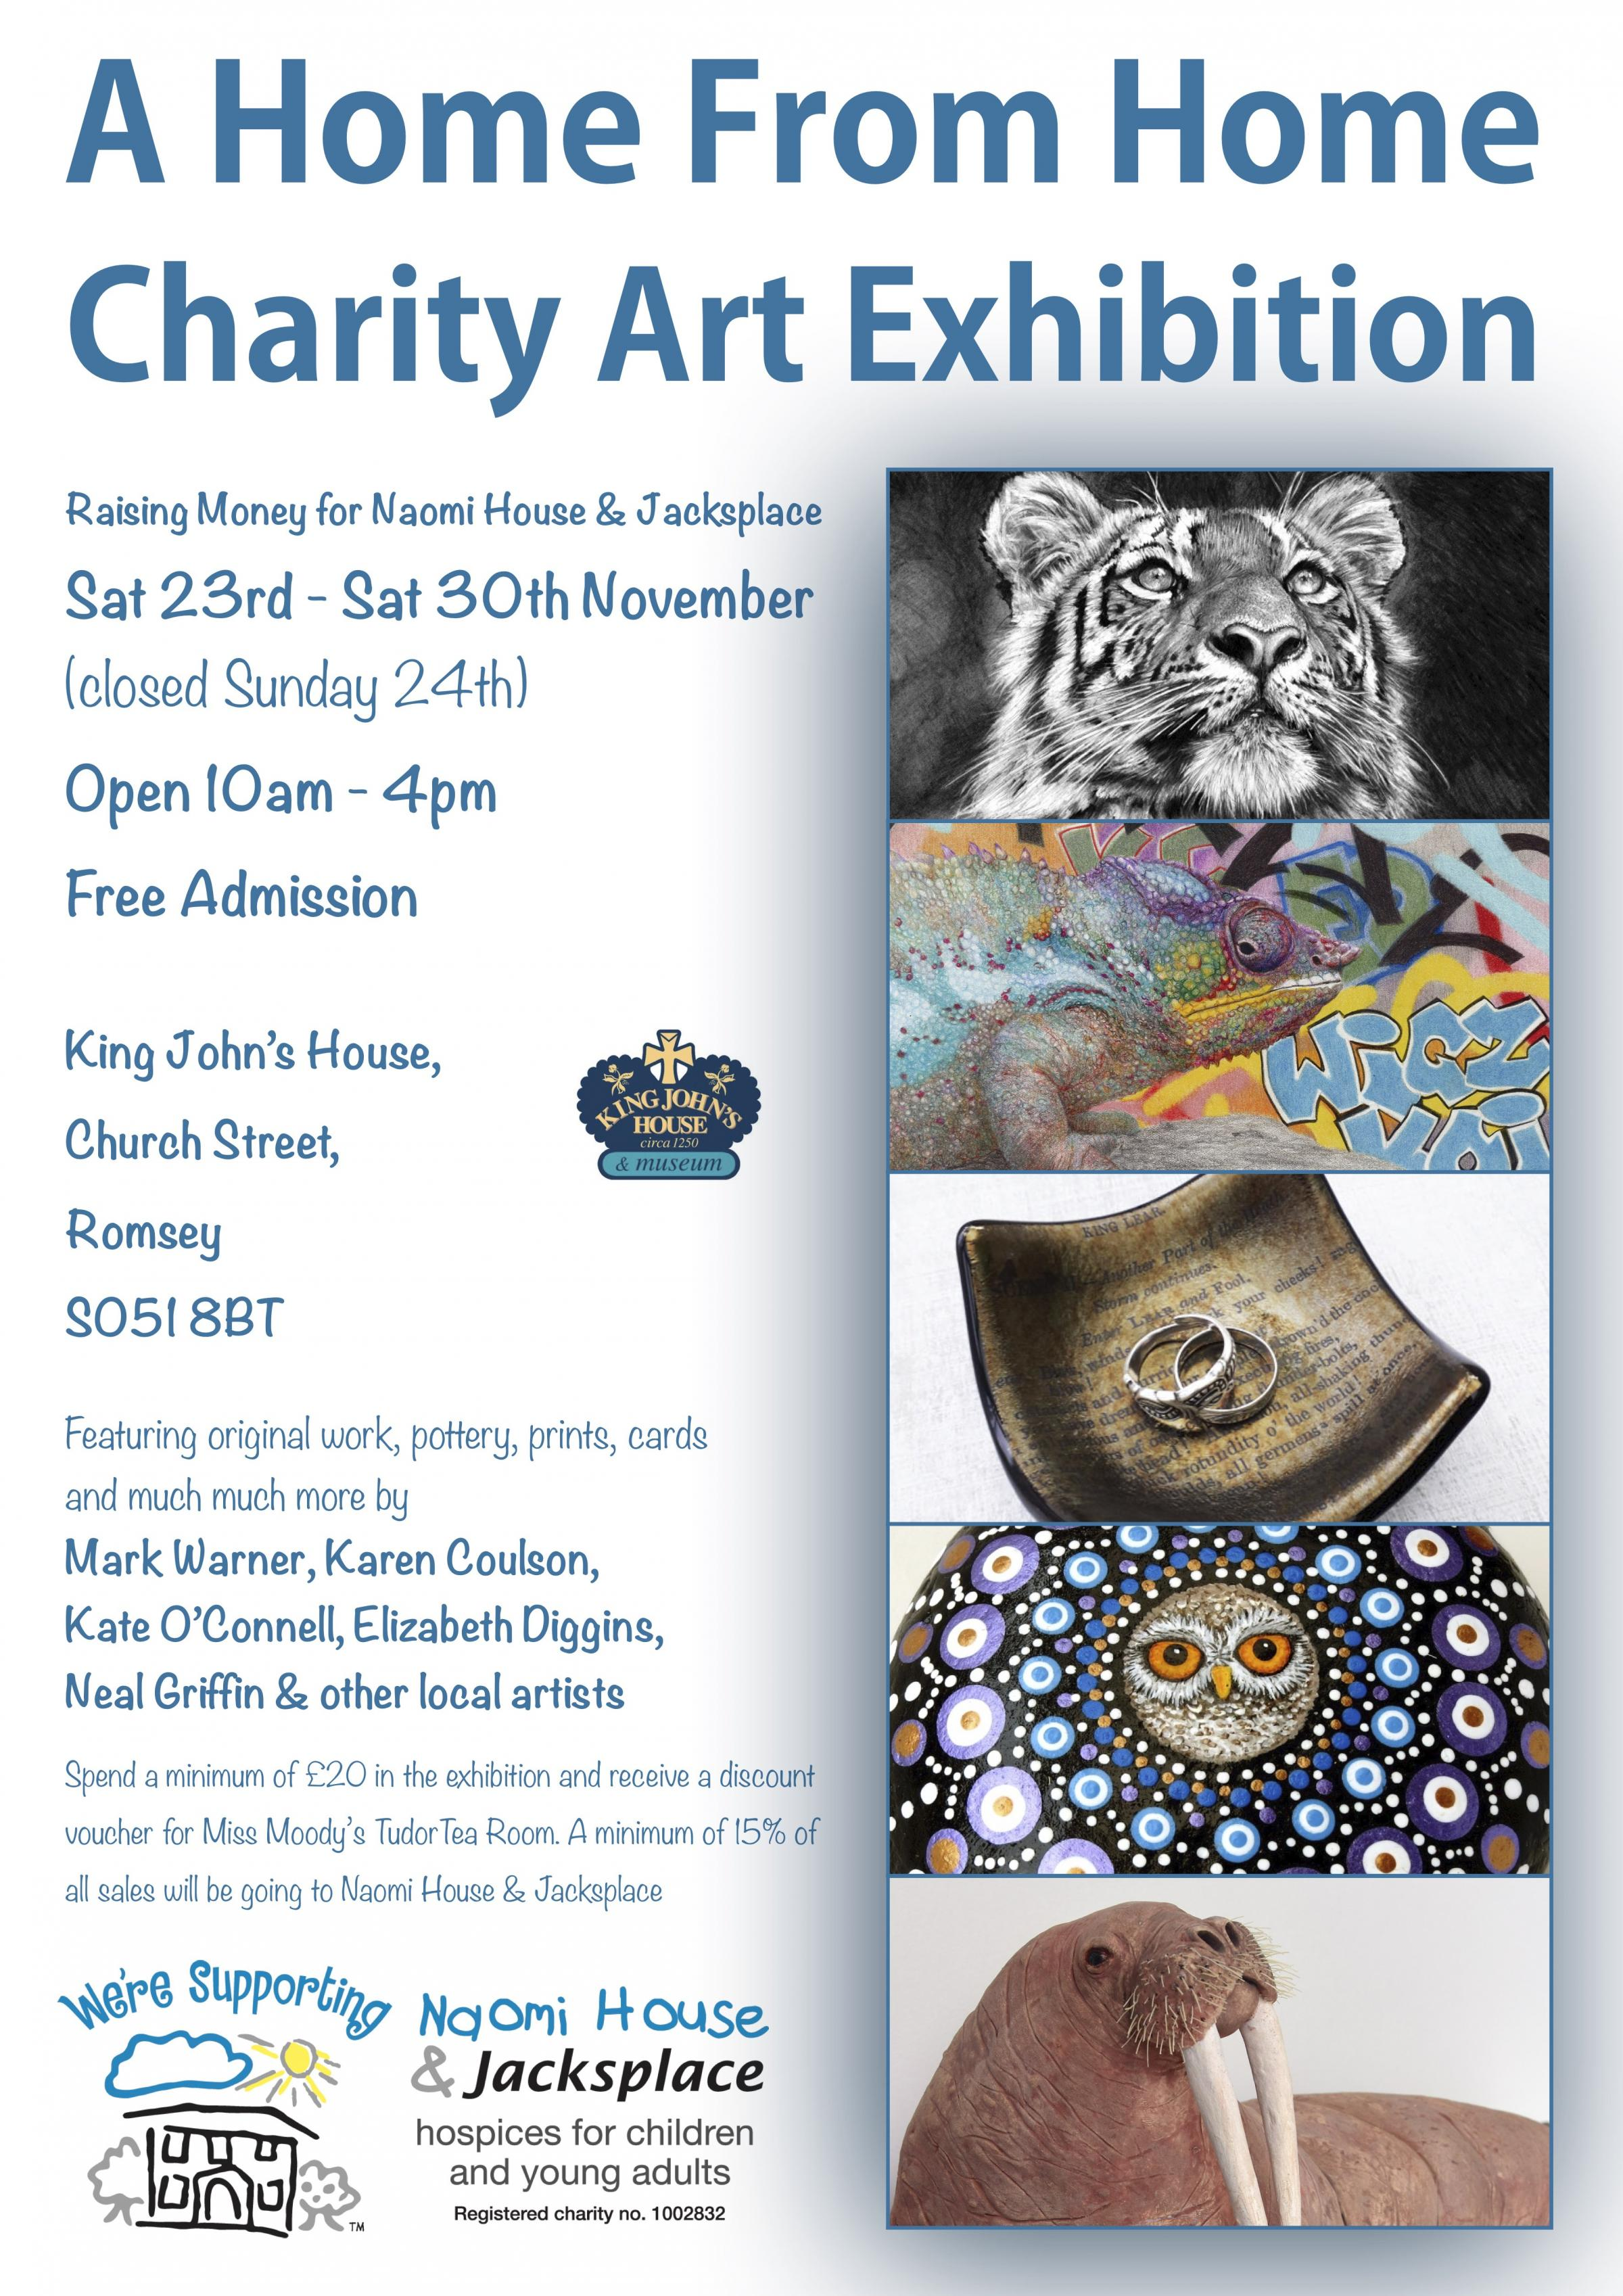 A Home From Home Charity Art Exhibition